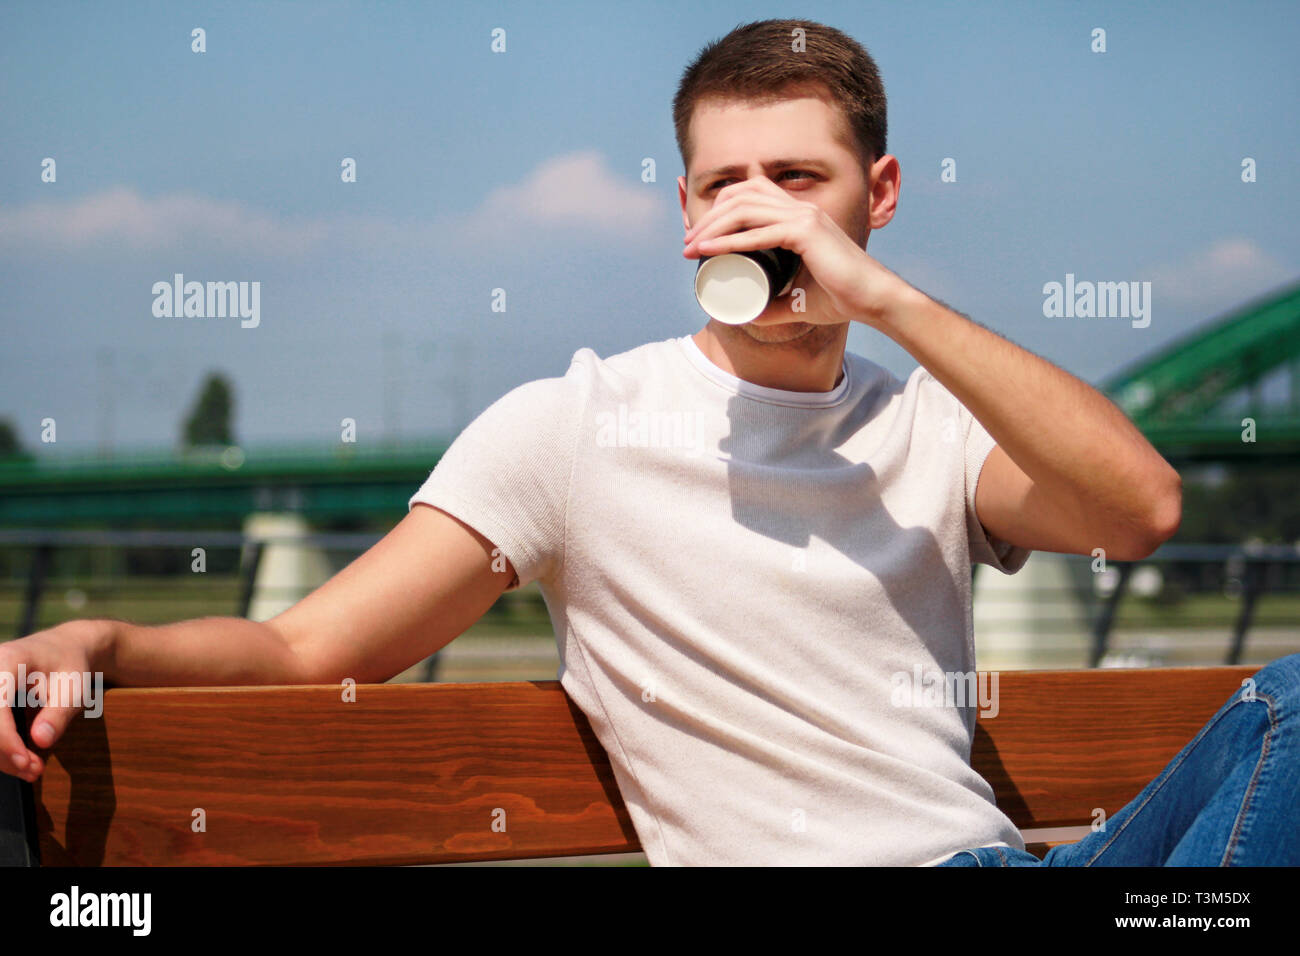 Handsome guy sitting on a bench on a pier and drinking coffee to go. Taking a break from city rush. Background scenery bridge, river, pier. - Stock Image